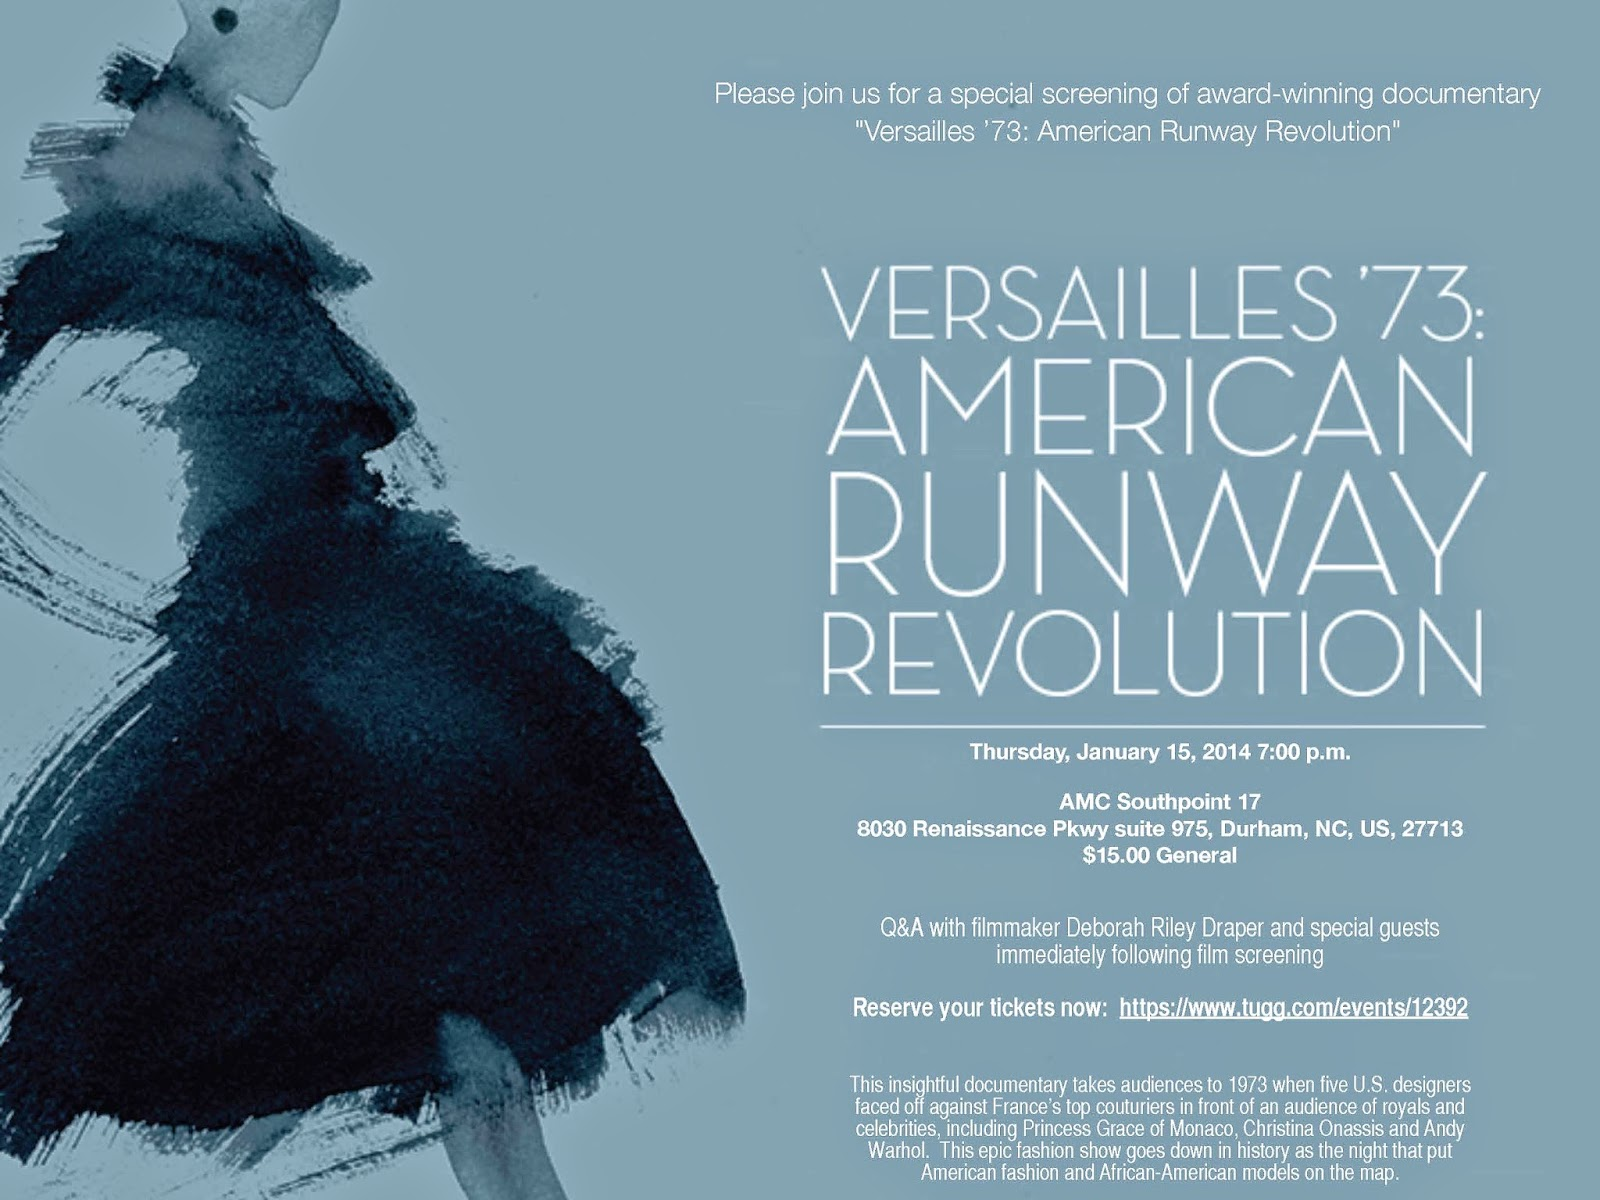 Versailles 73: American Runway Revolution Screening